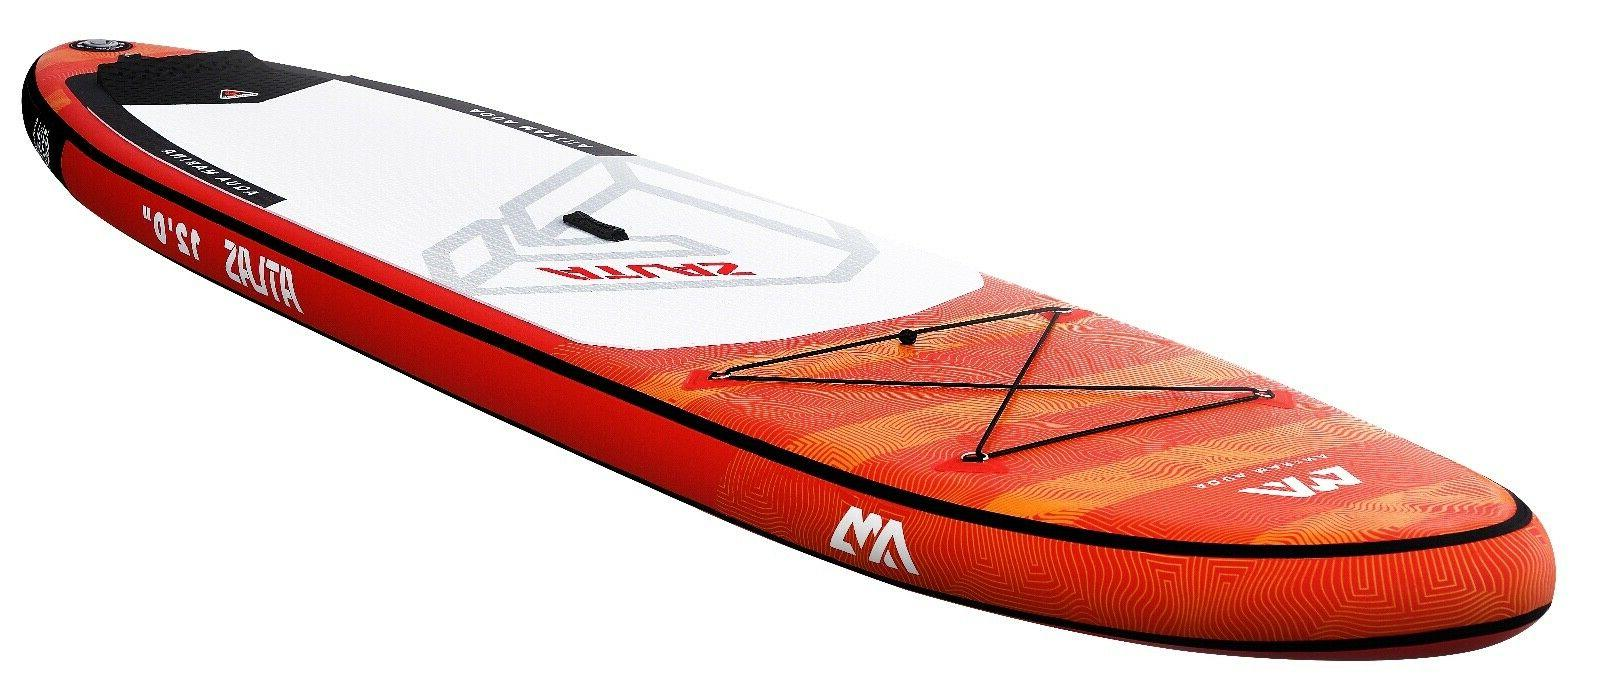 12' Board Inflatable SUP w/ Paddle